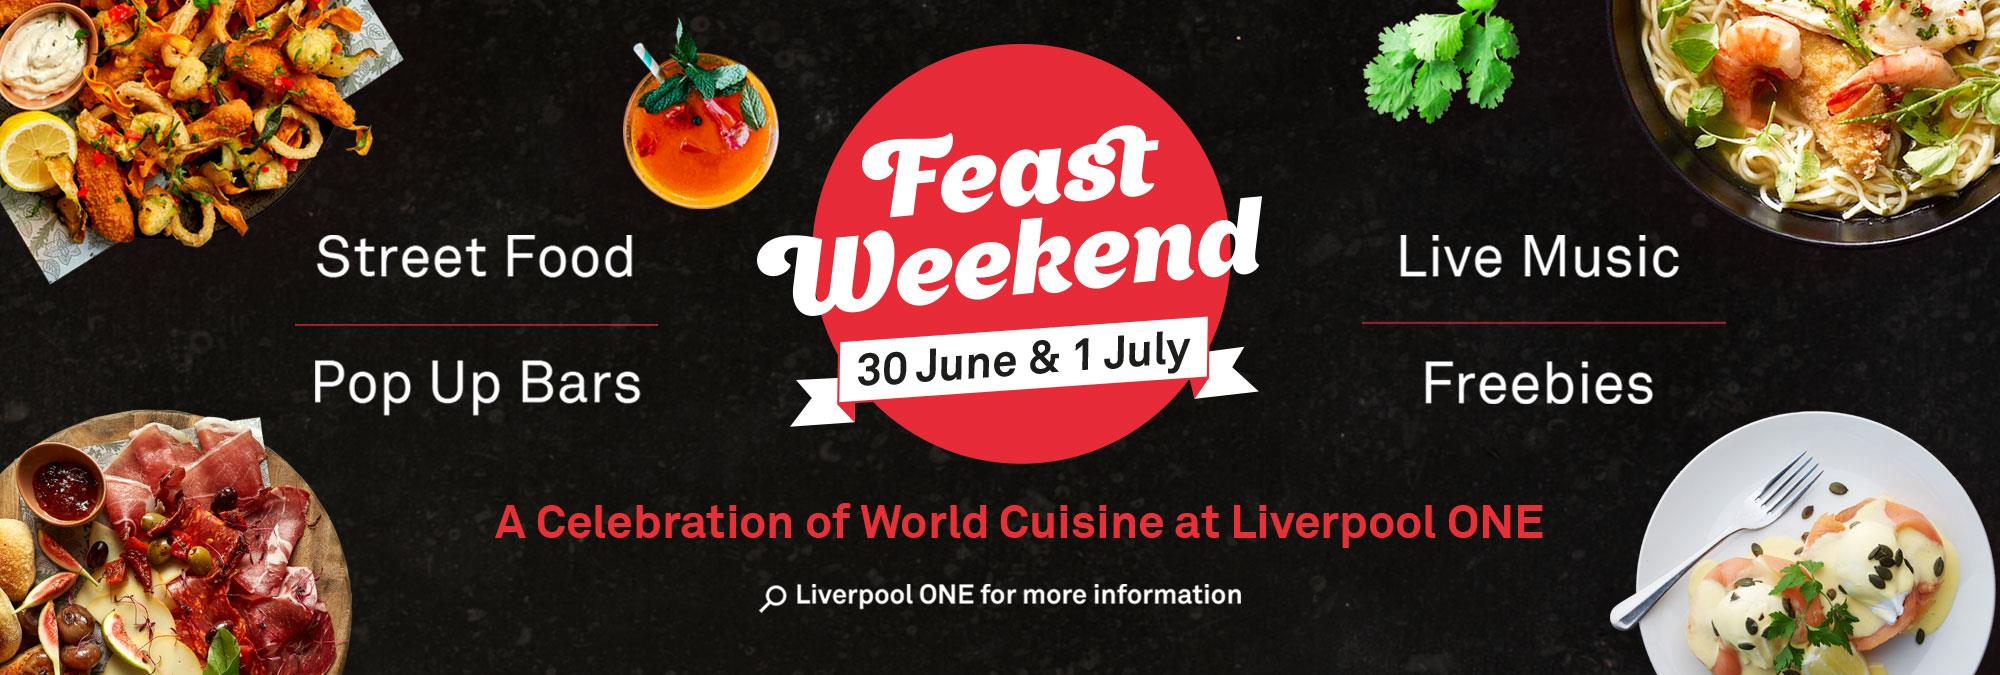 Feast Weekend at Liverpool ONE